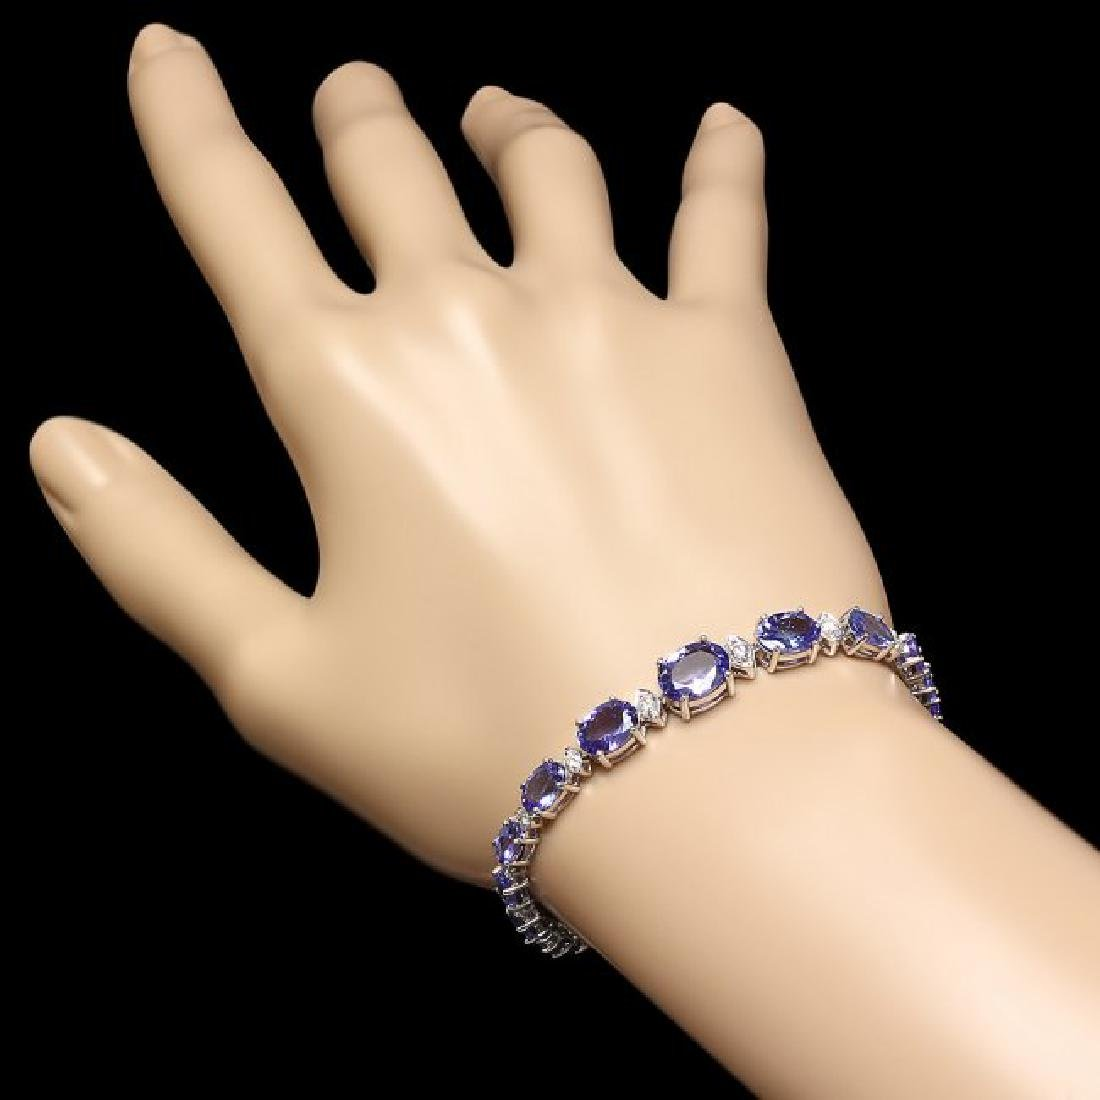 14k 12.50ct Tanzanite 0.80ct Diamond Bracelet - 4